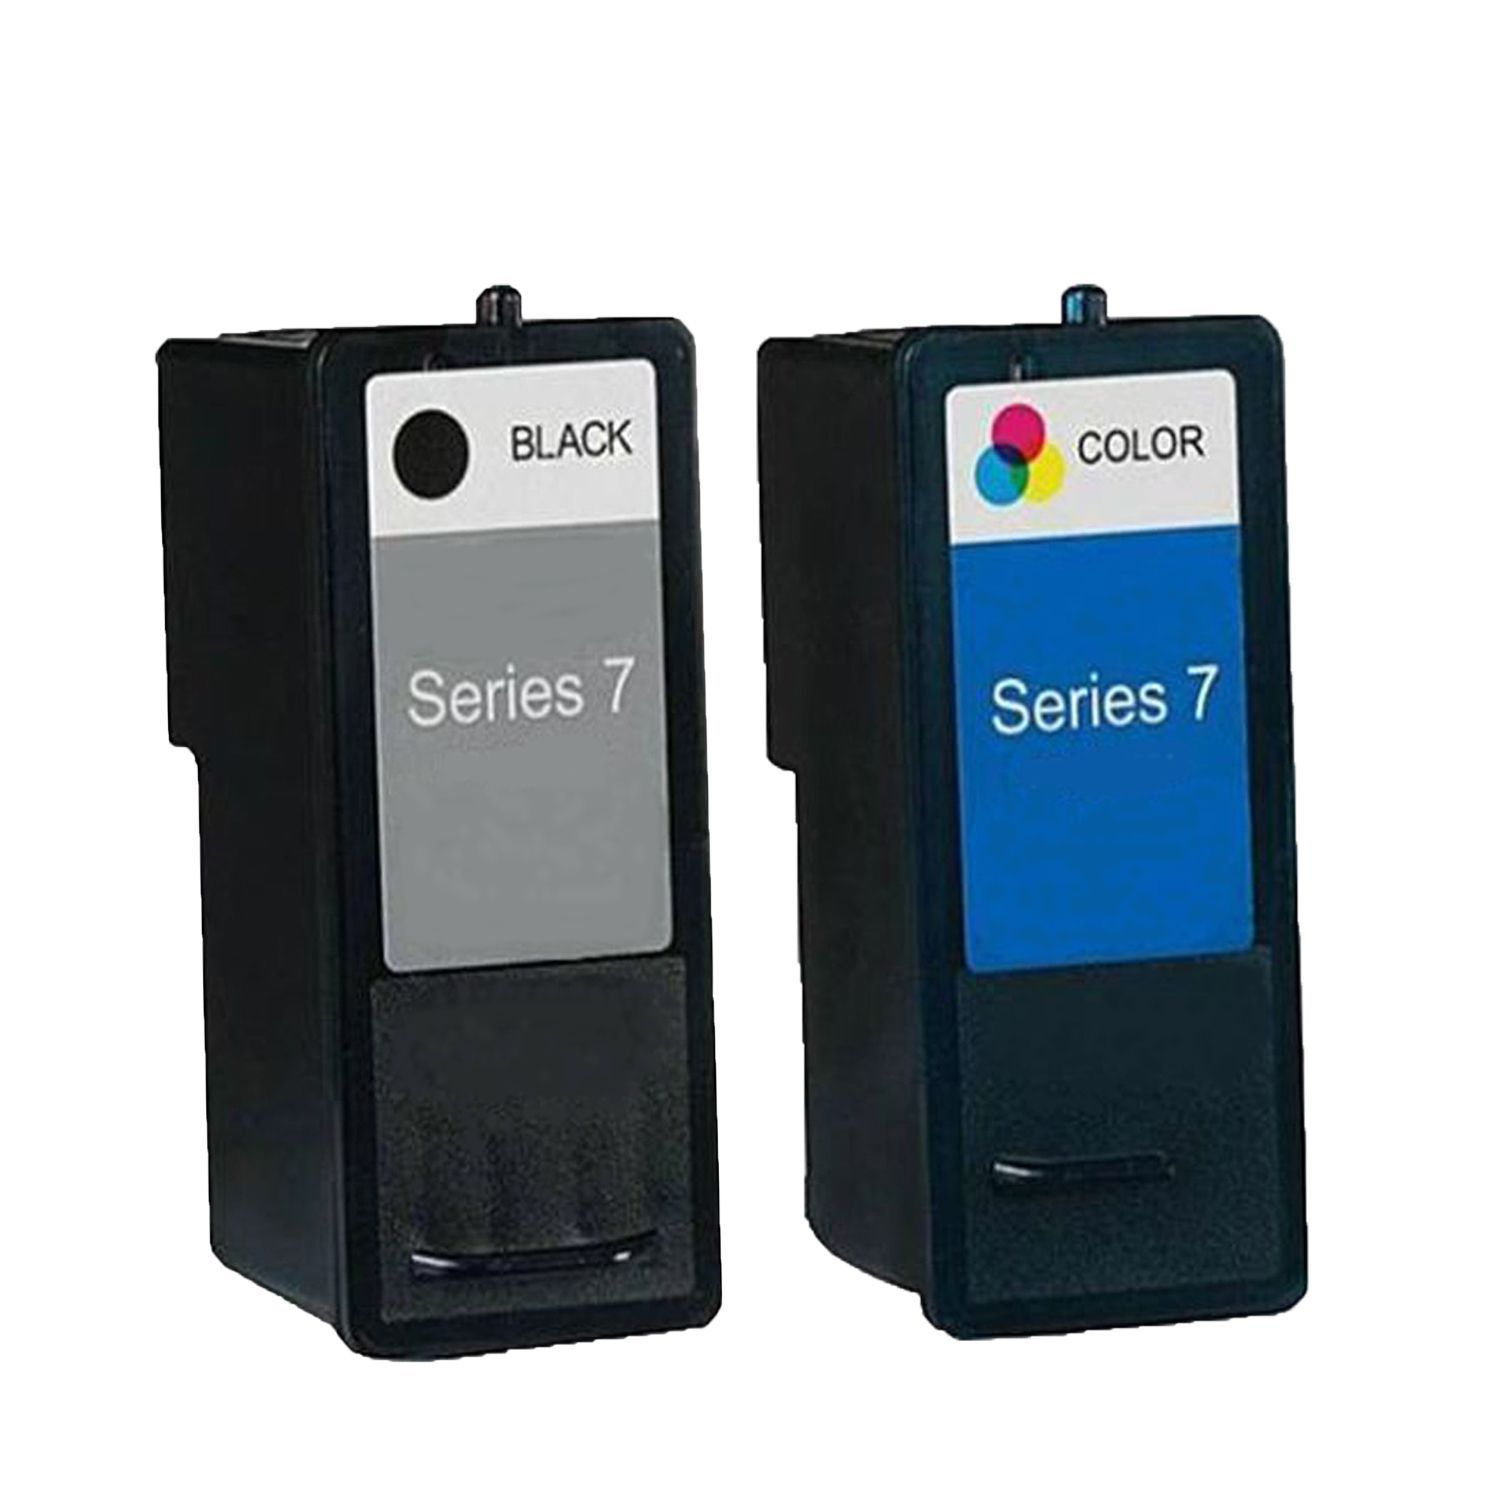 N 2PK DH828 + DH929 & Color Compatible Inkjet Cartridge For Dell Inkjet A966 A968 A968W